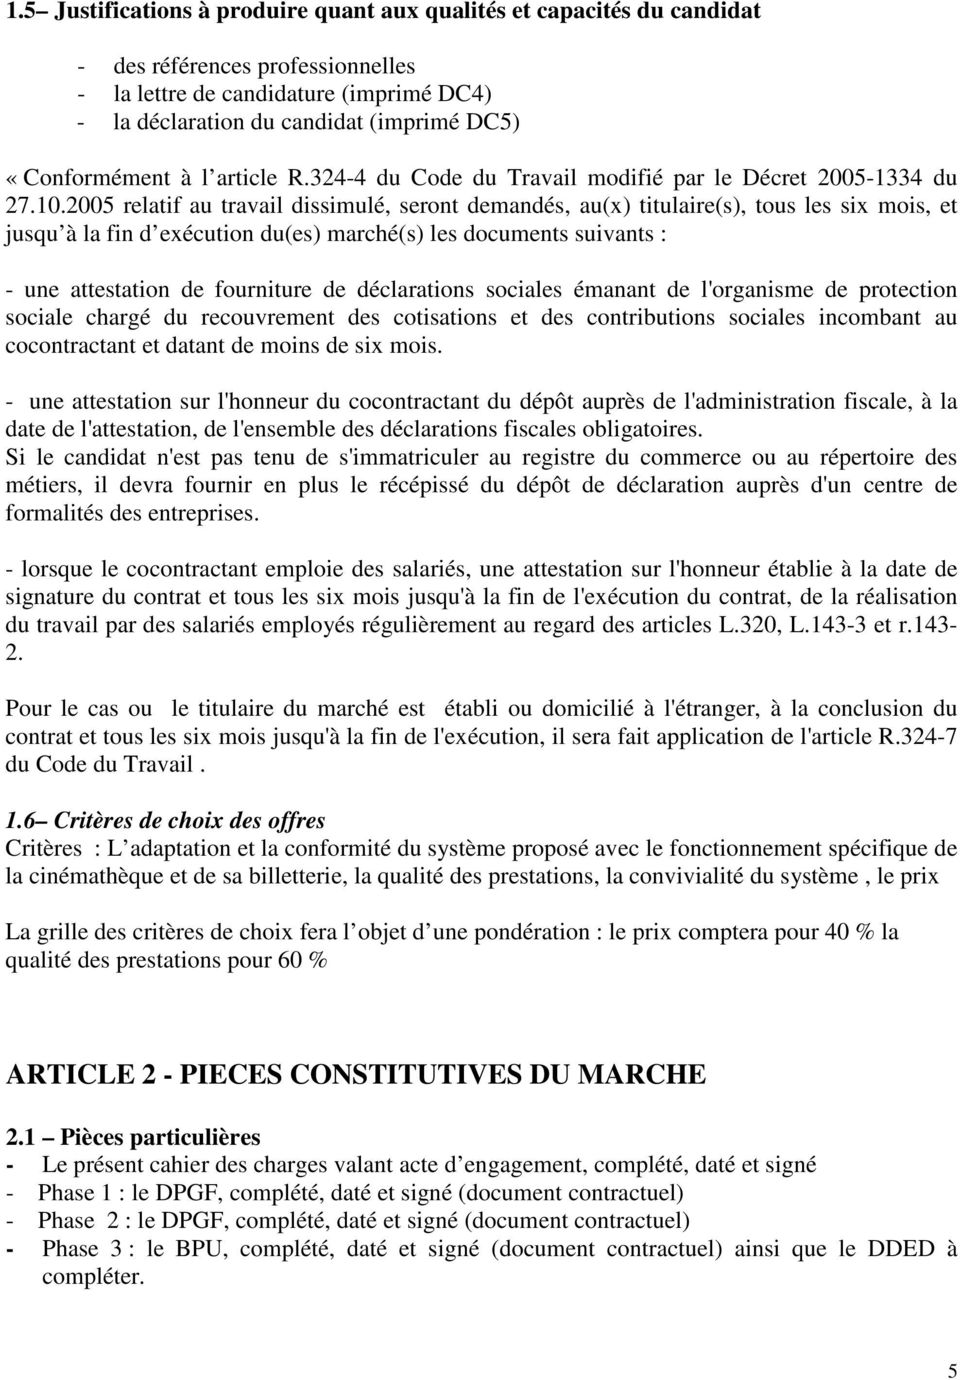 Cahier Des Charges Marche A Procedure Adaptee Pdf